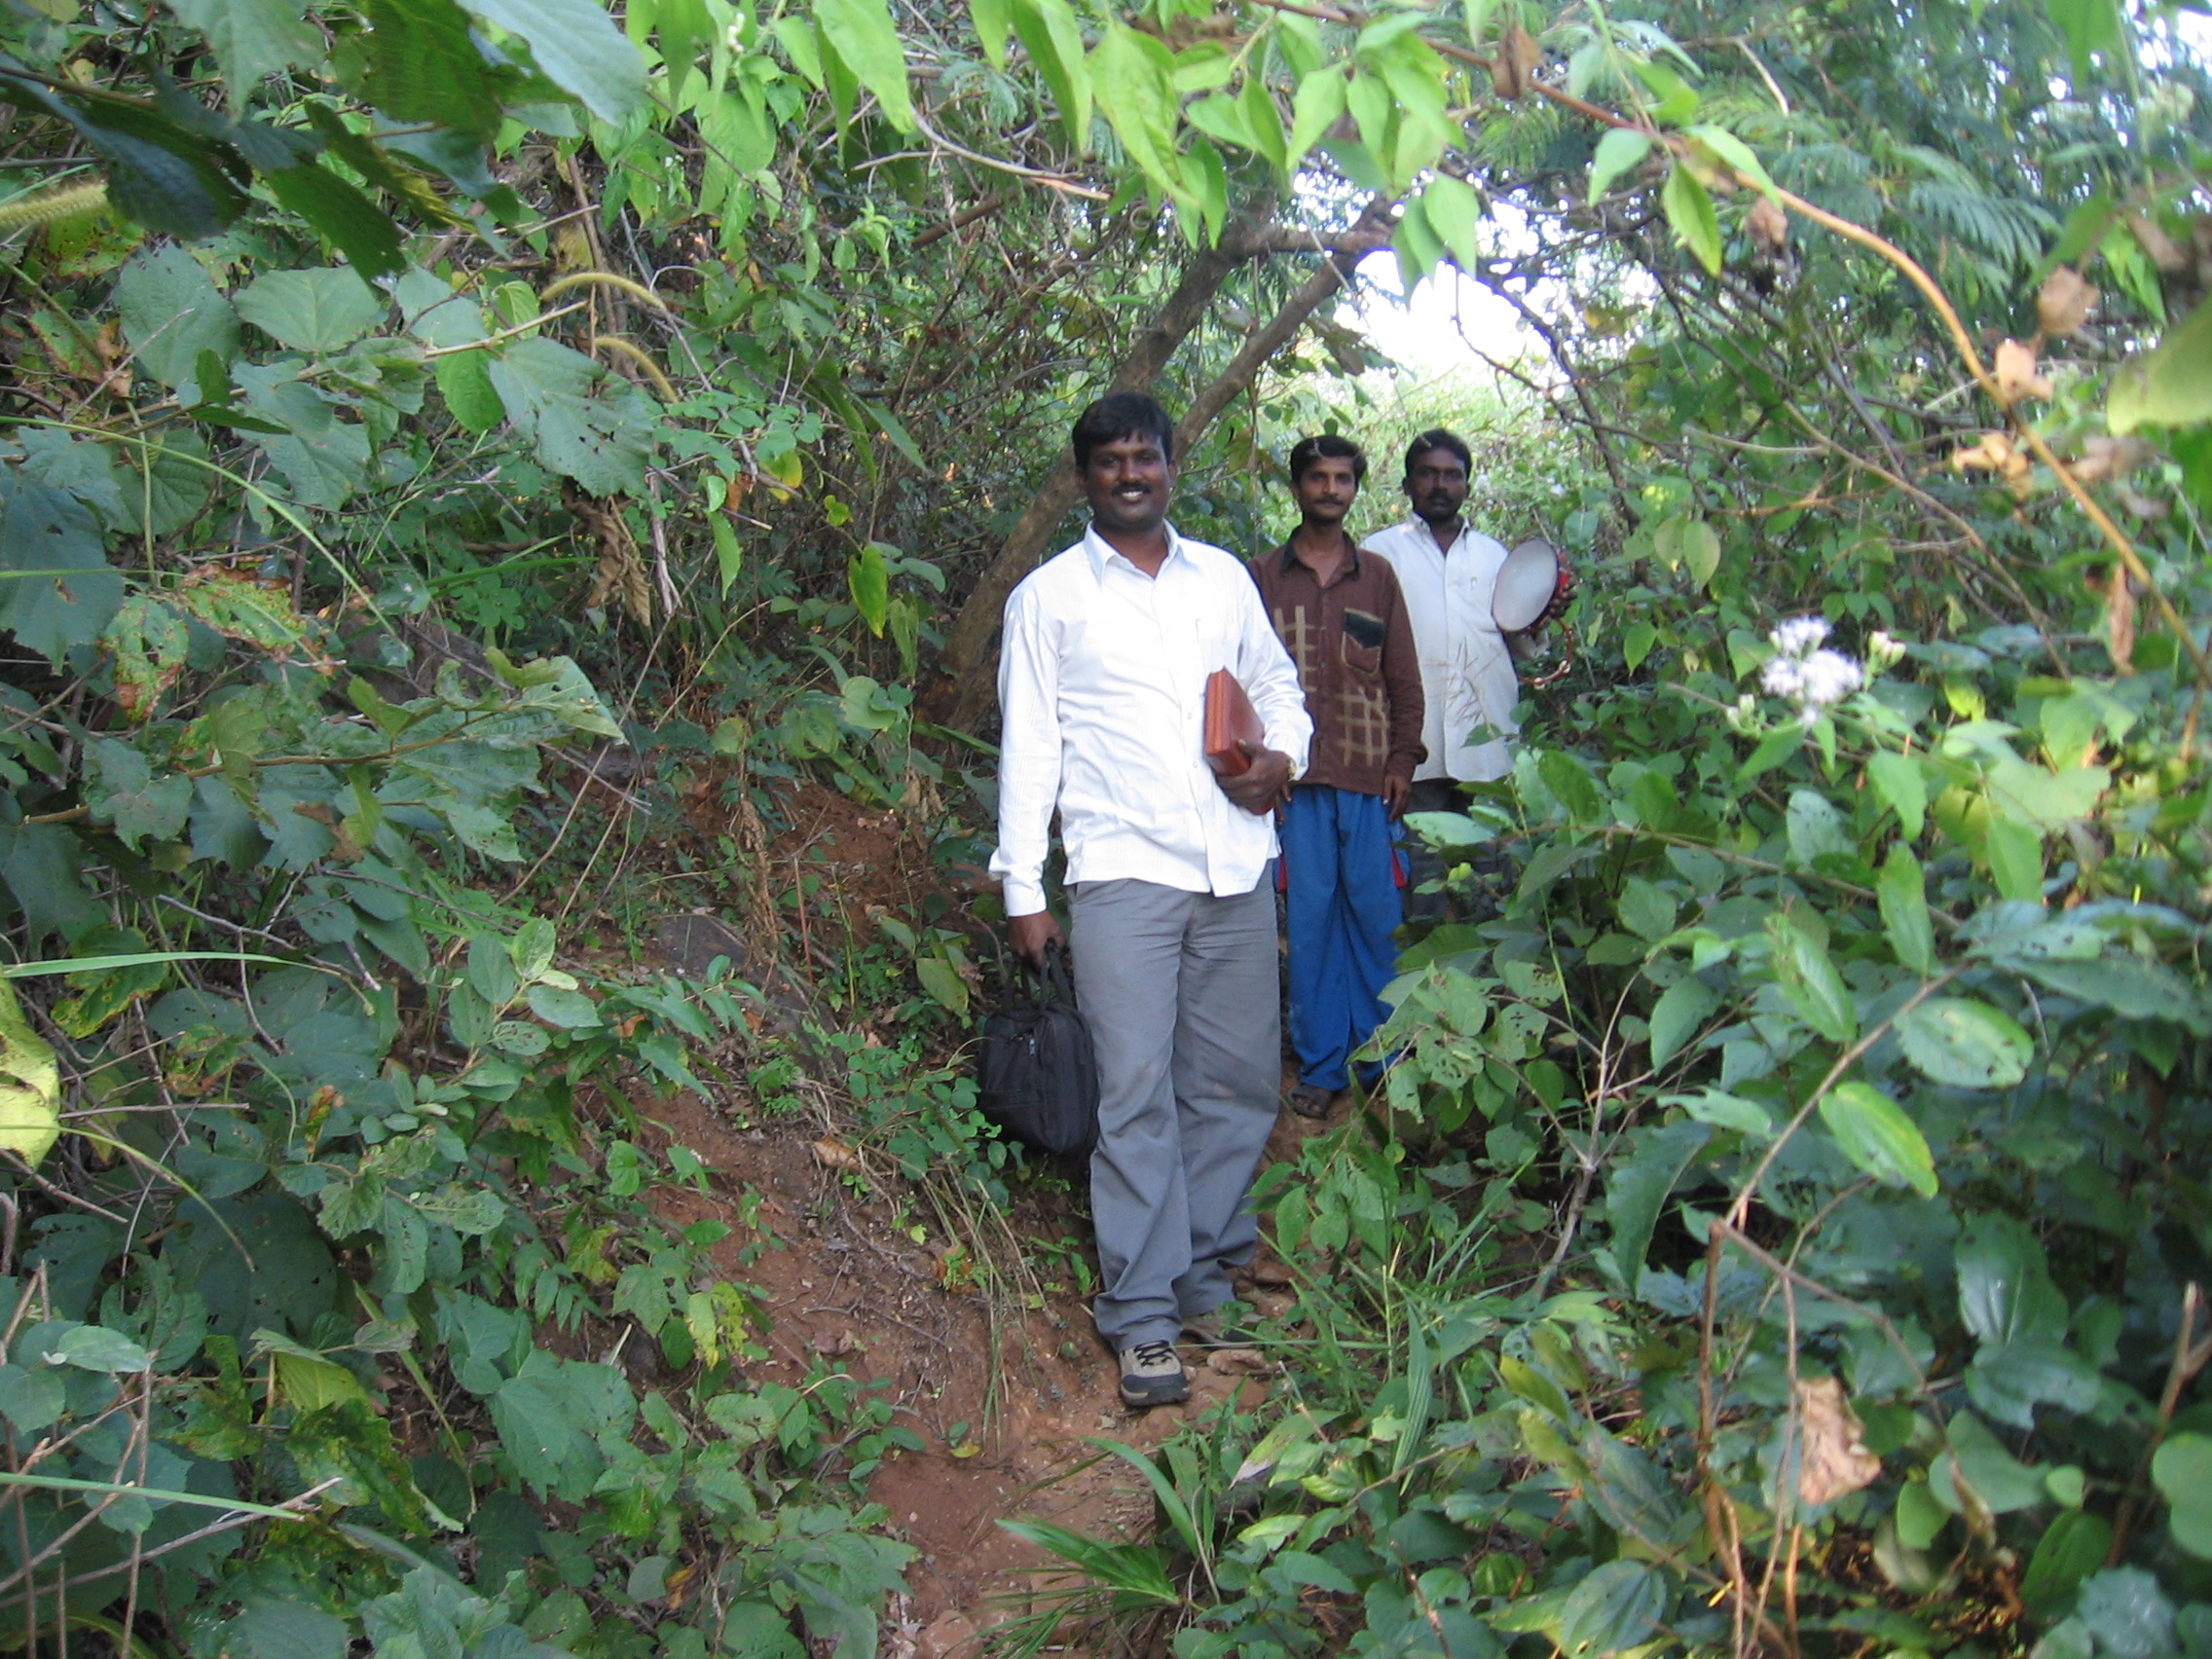 Sudhir traveling to the mountain region to visit unreached tribal people